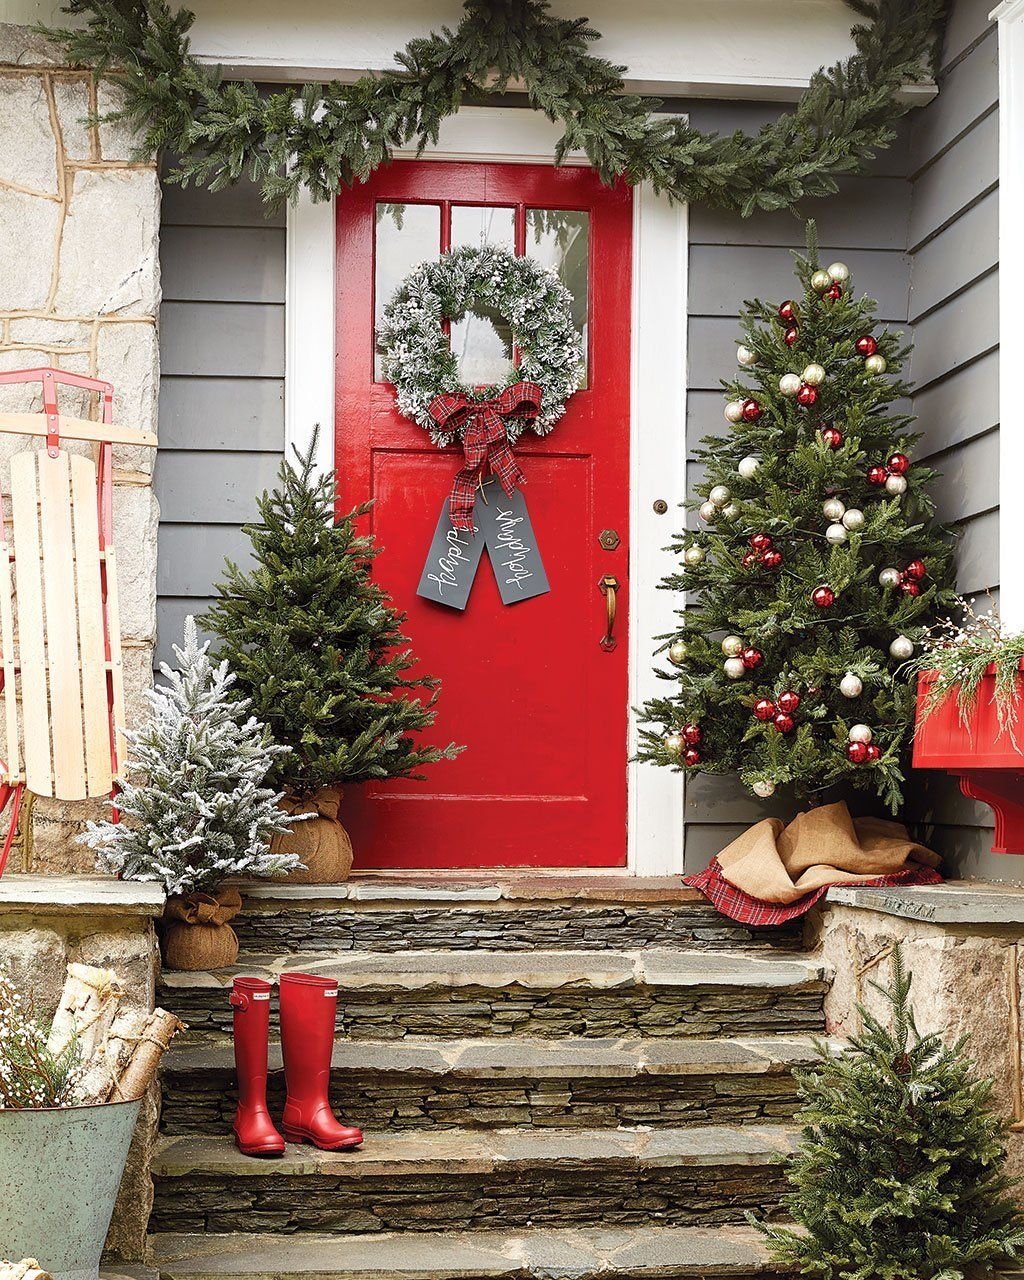 10 Festive Holiday Front Doors To Inspire How To Decorate